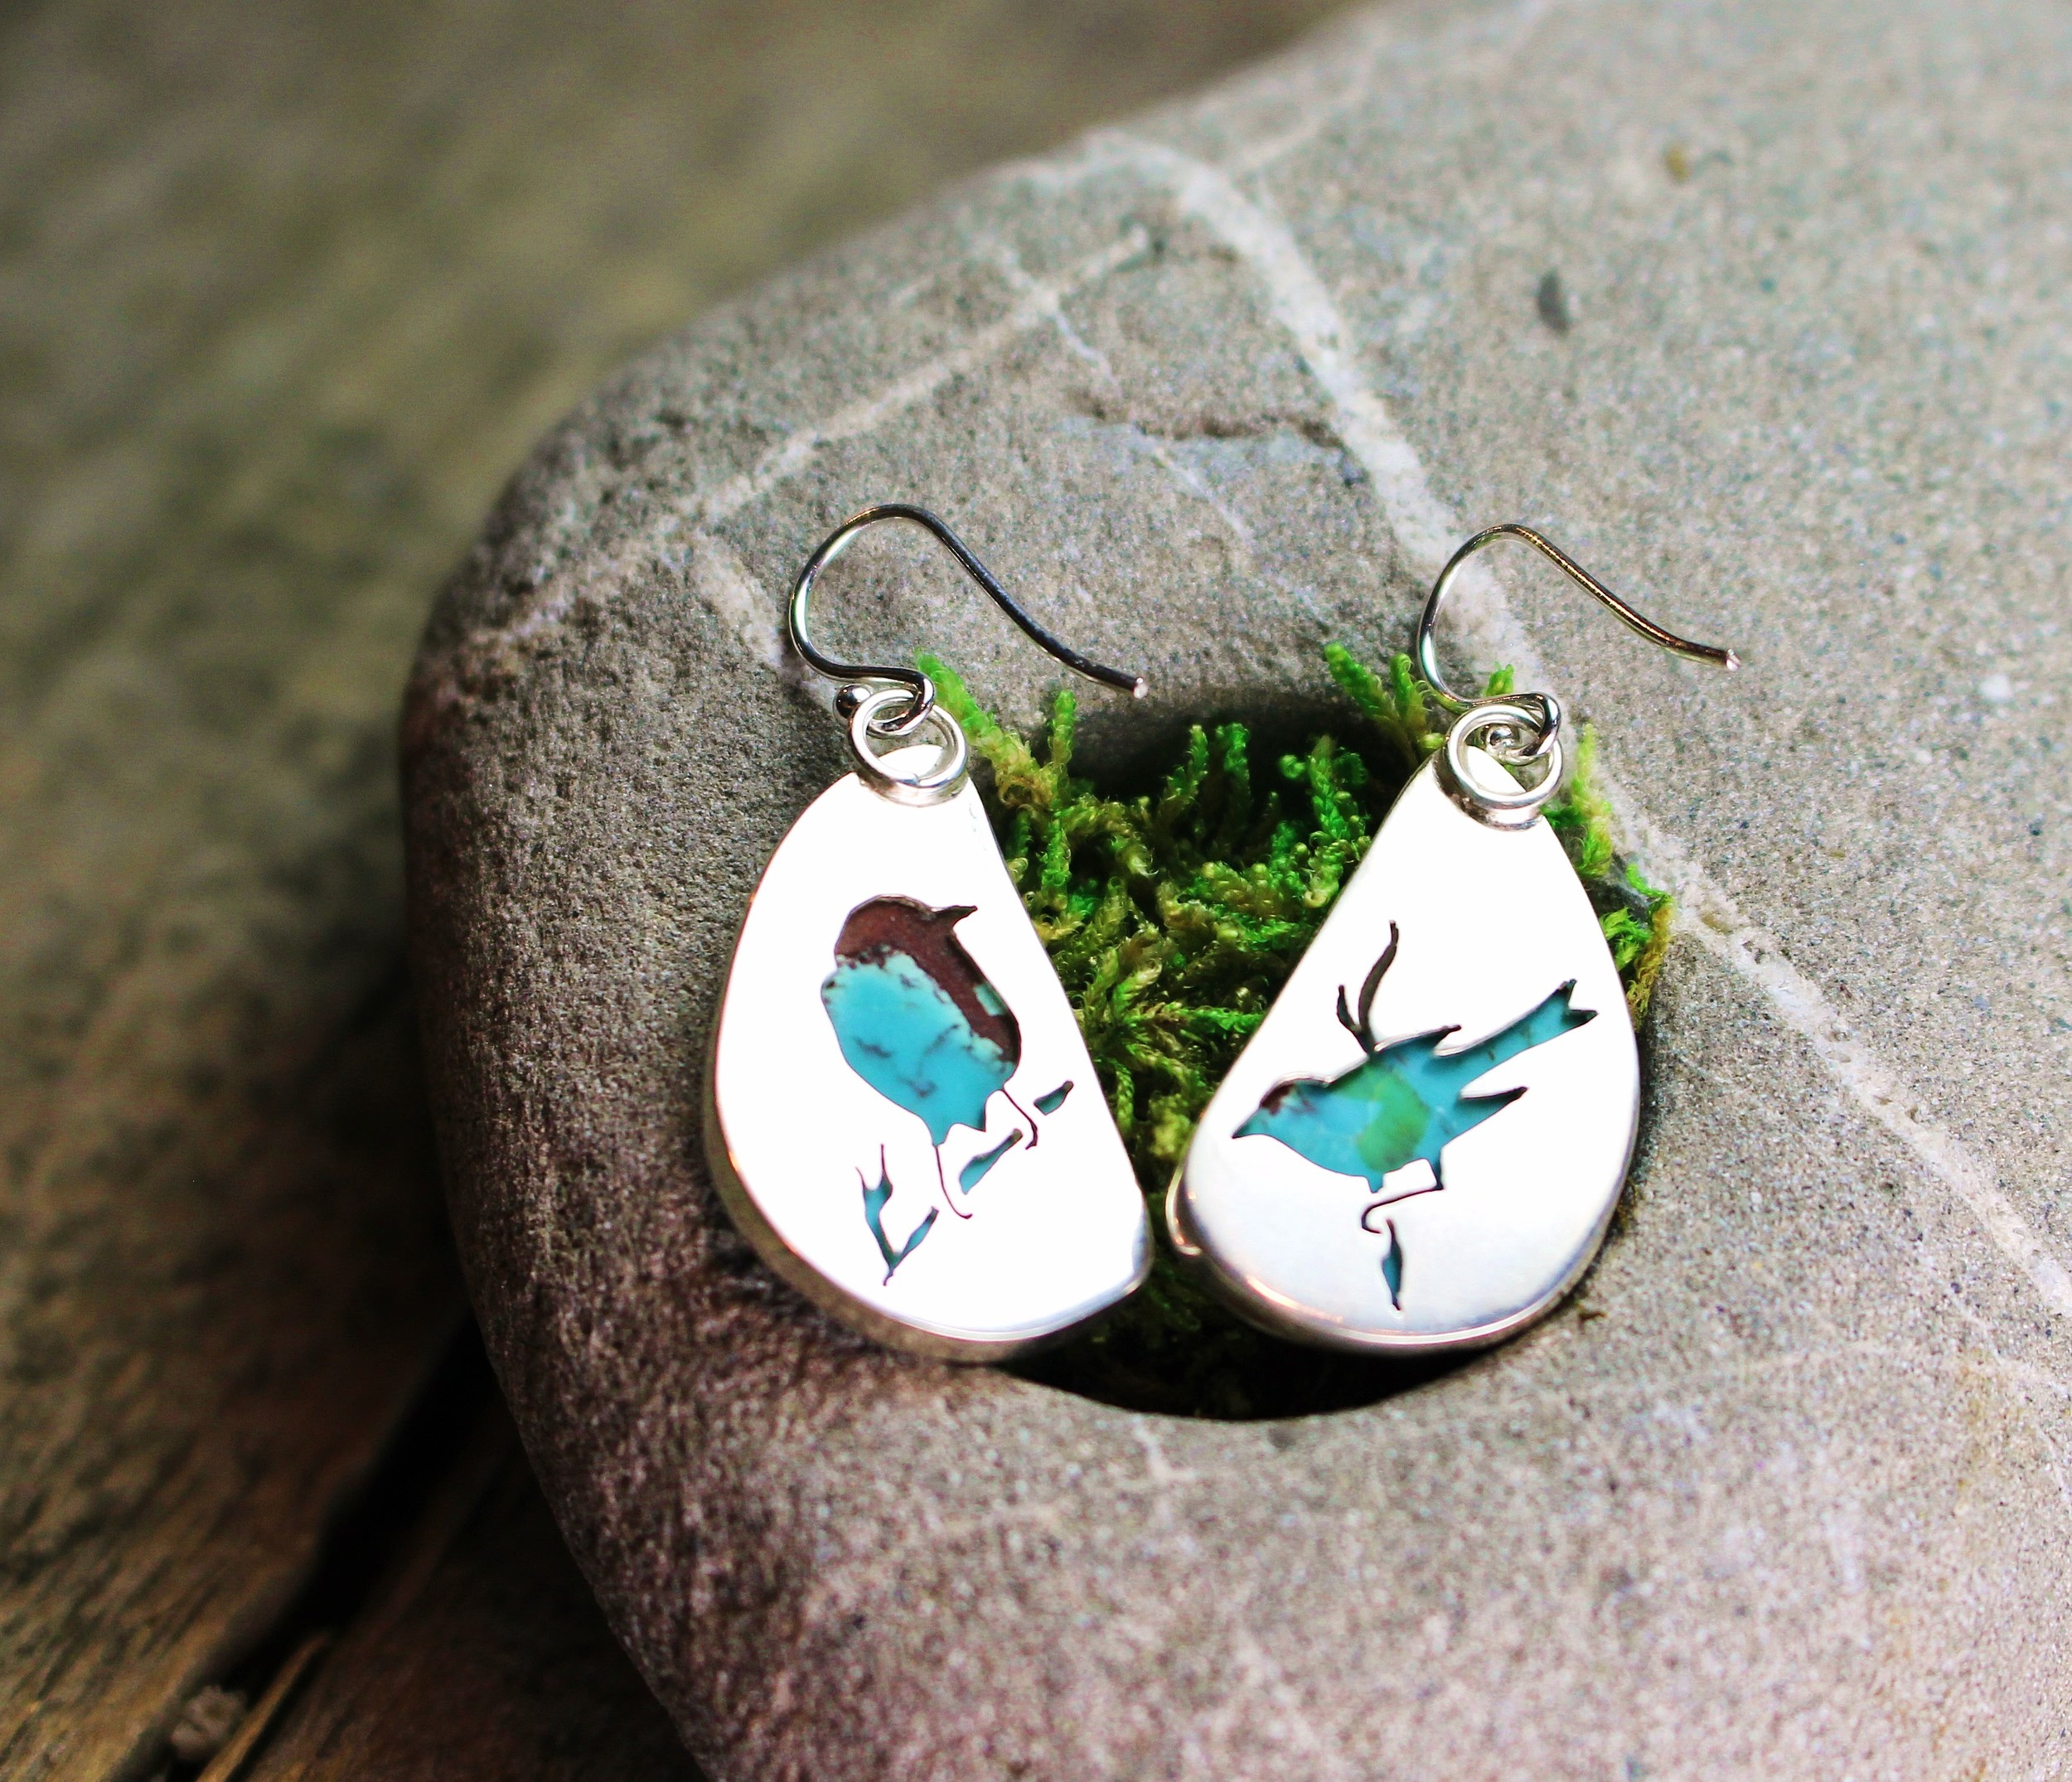 Song Bird Cut-Out Earrings with Turquoise set in Sterling